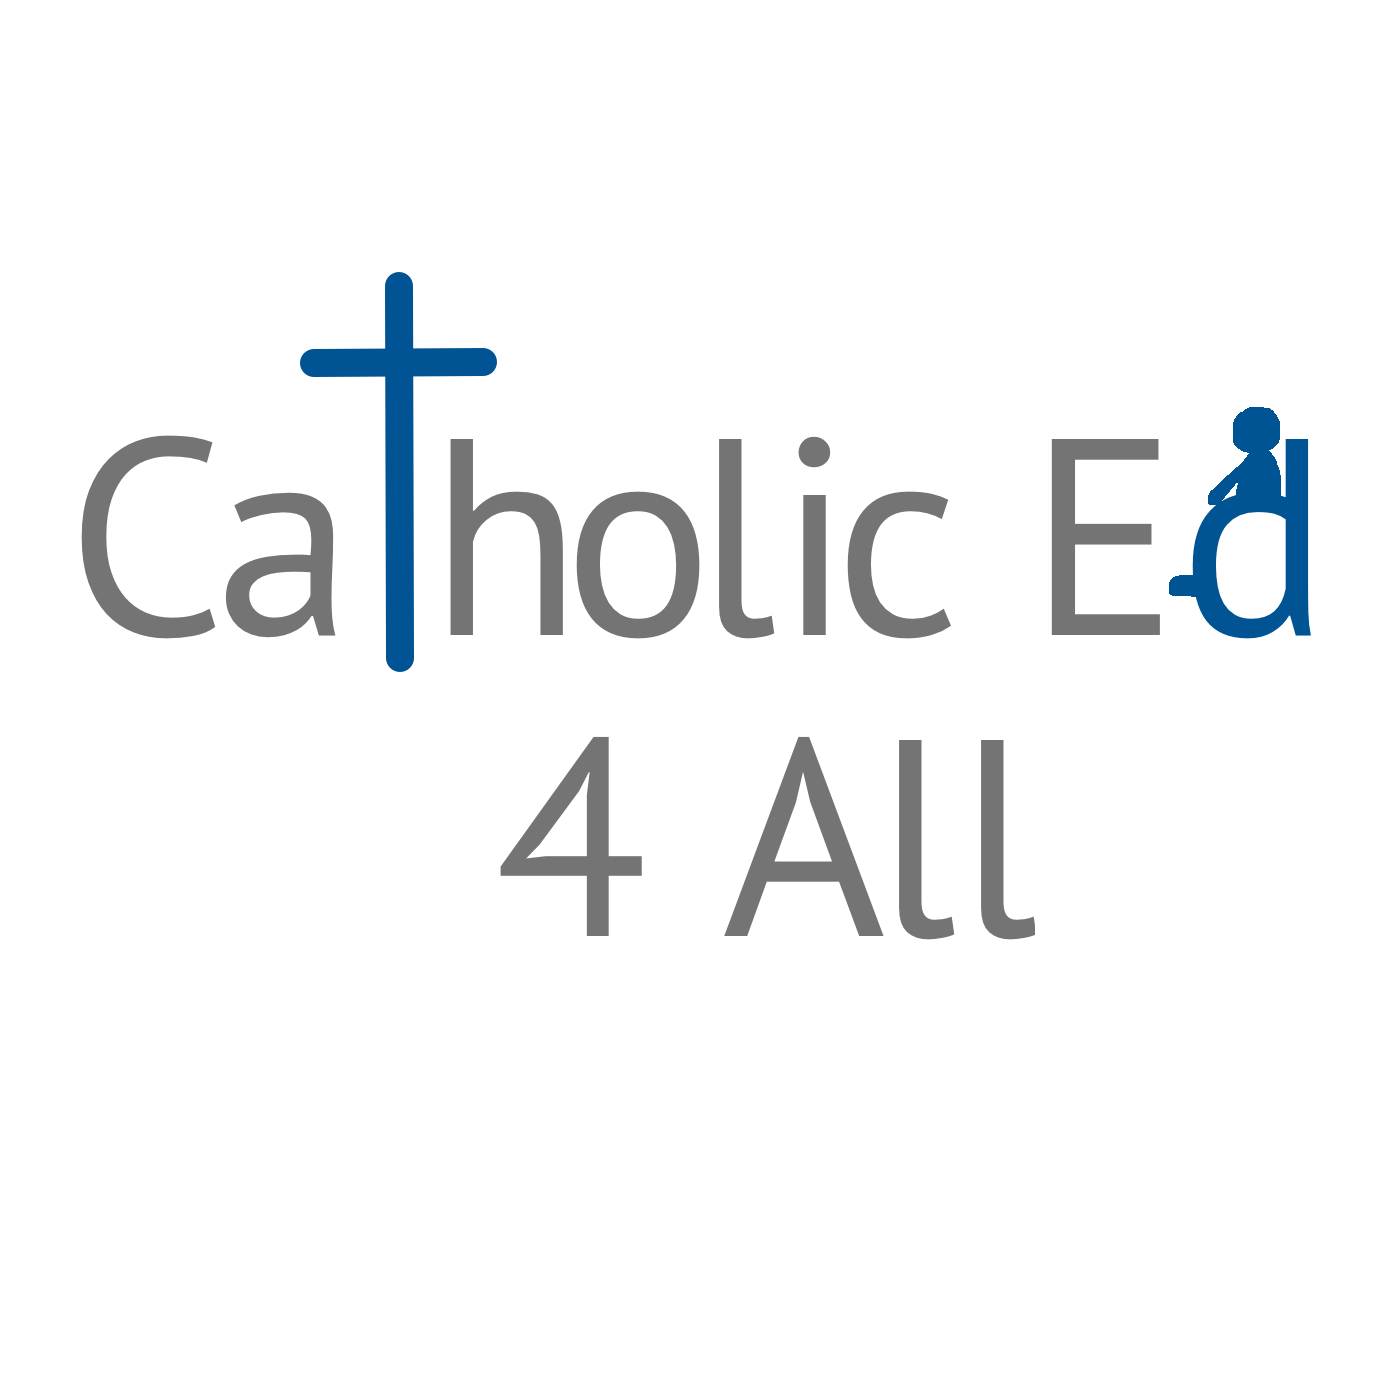 CatholicEd4ALL